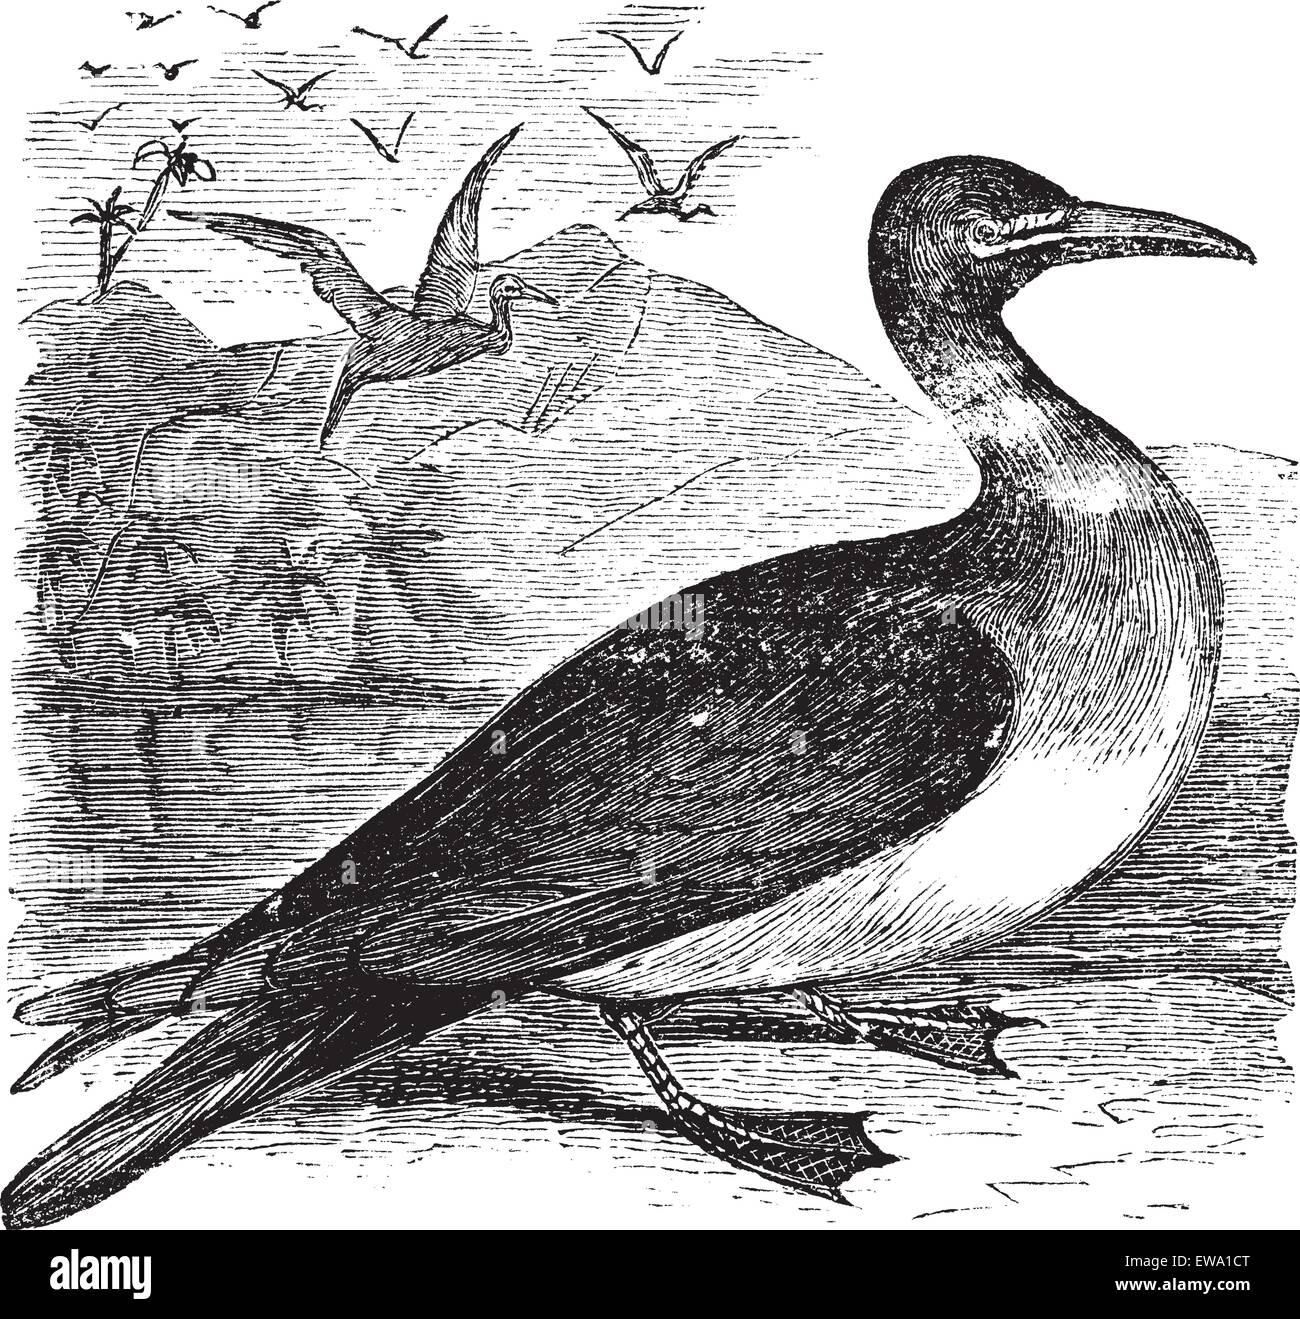 Booby or Sula sp., vintage engraving. Old engraved illustration of a Booby. - Stock Vector